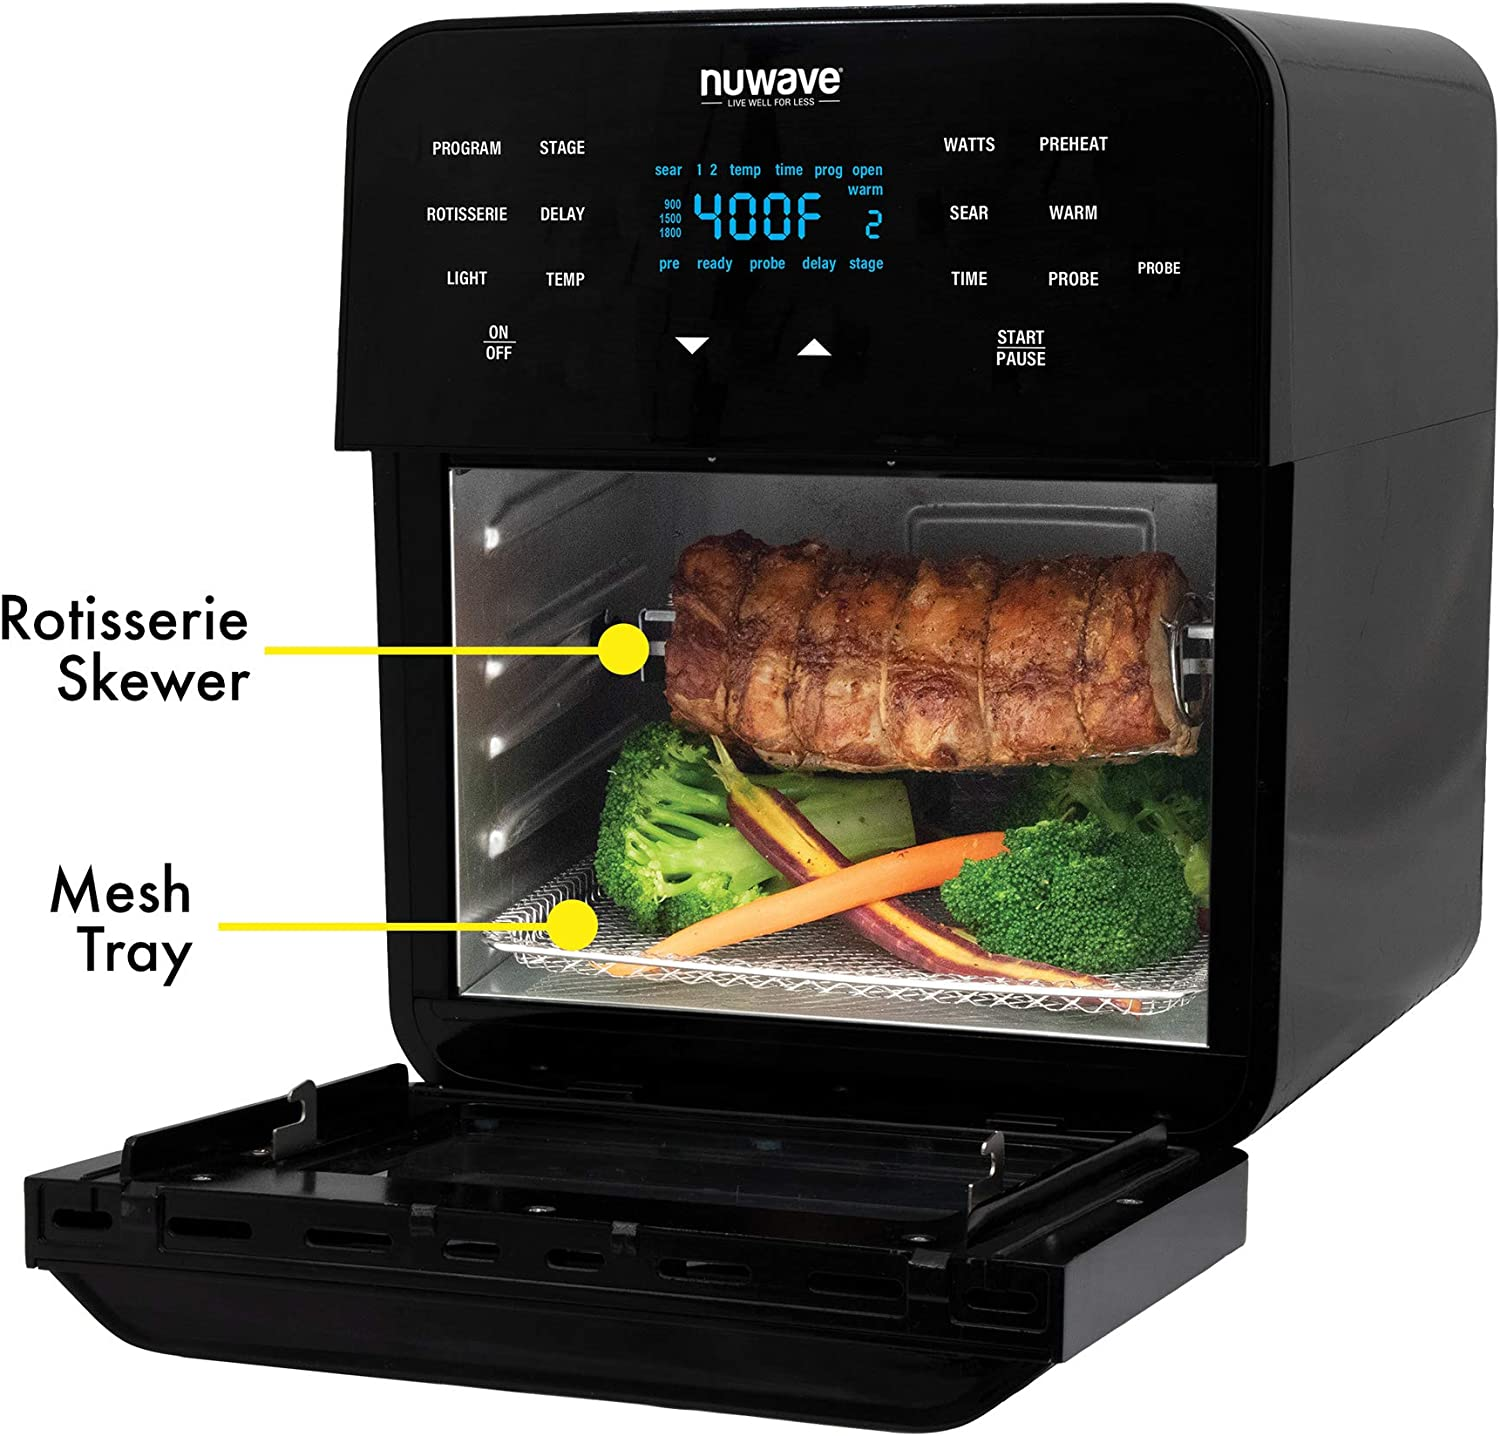 Nuwave - best air fryer for family of 4